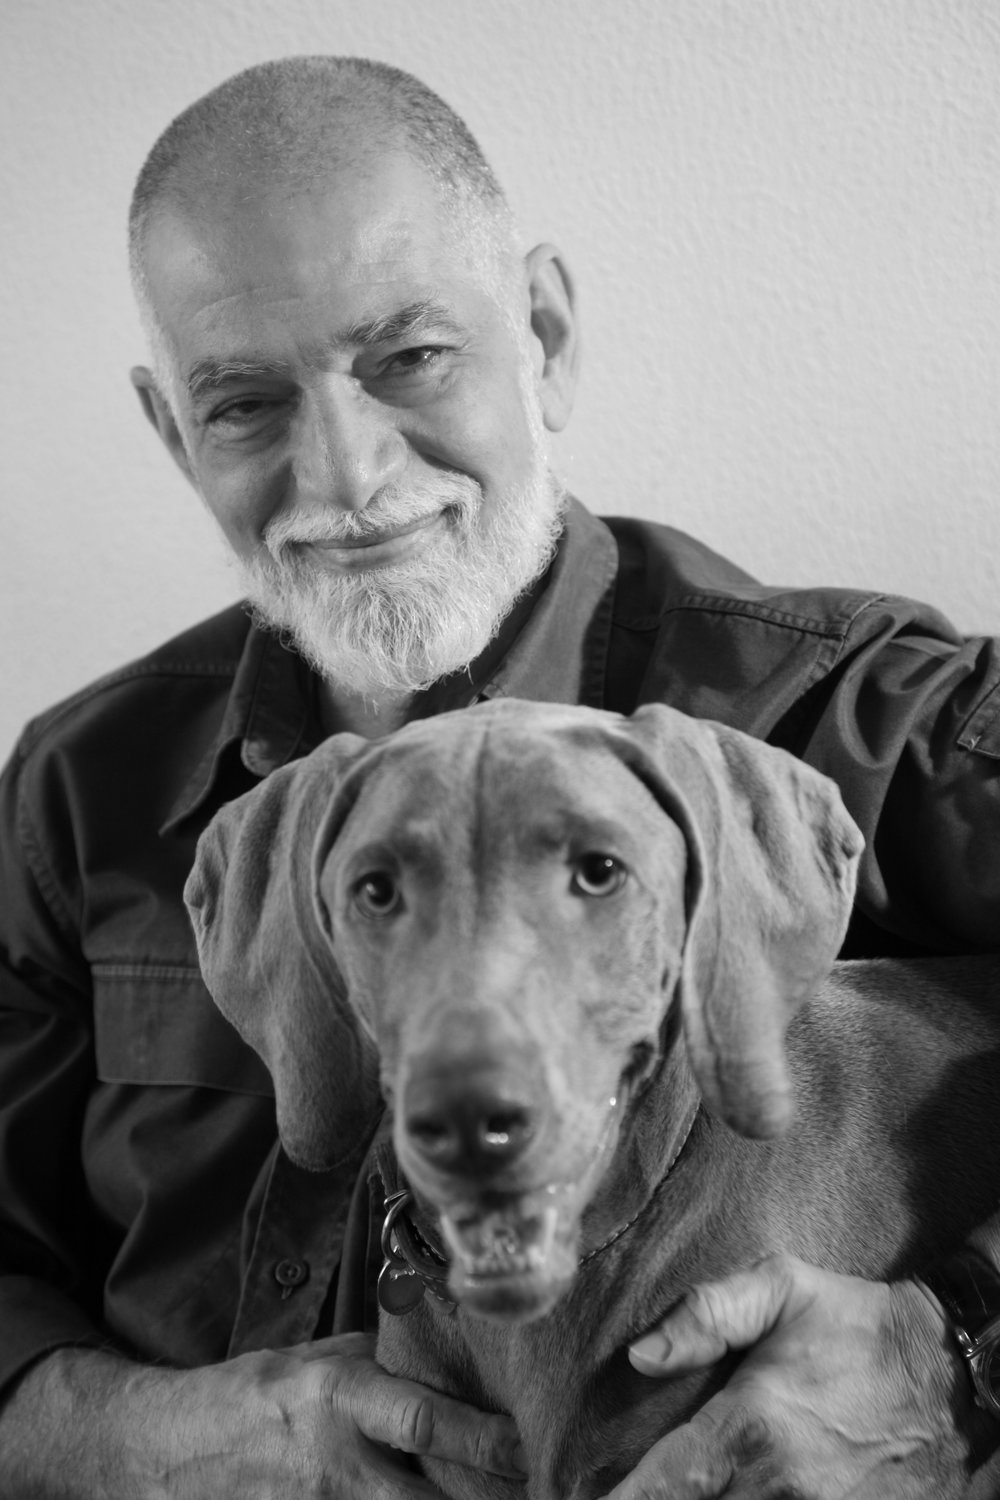 Professor DeRose with his vegetarian weimaraner Jaya